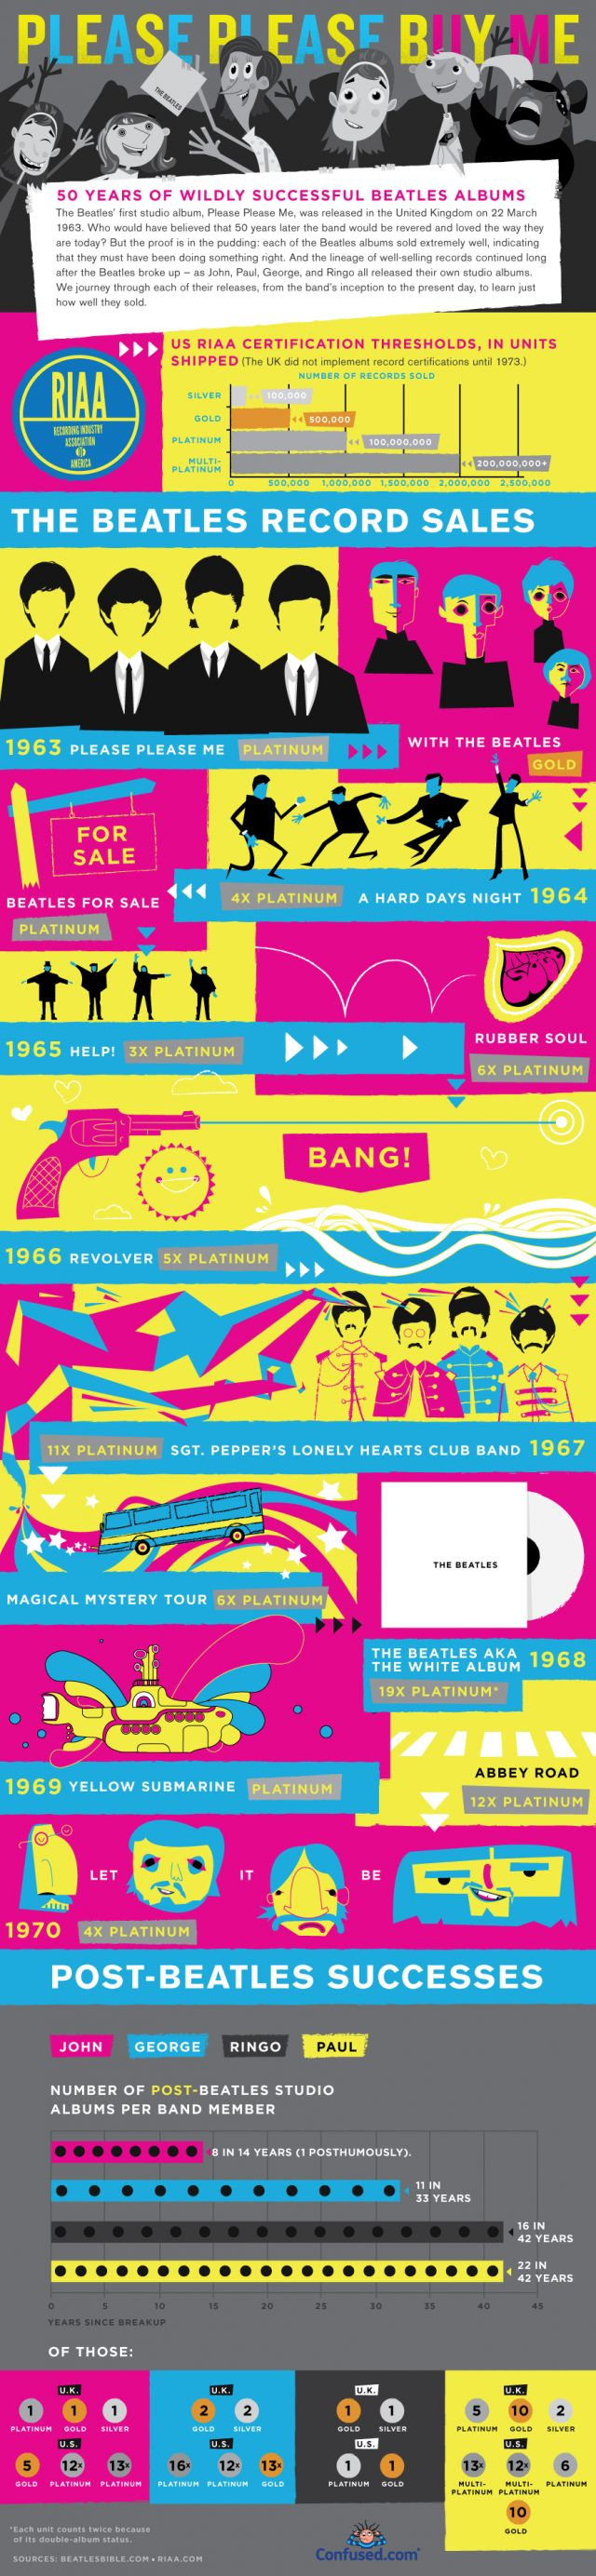 Please Please Buy Me: 50 Years of Beatles Albums [infographic]